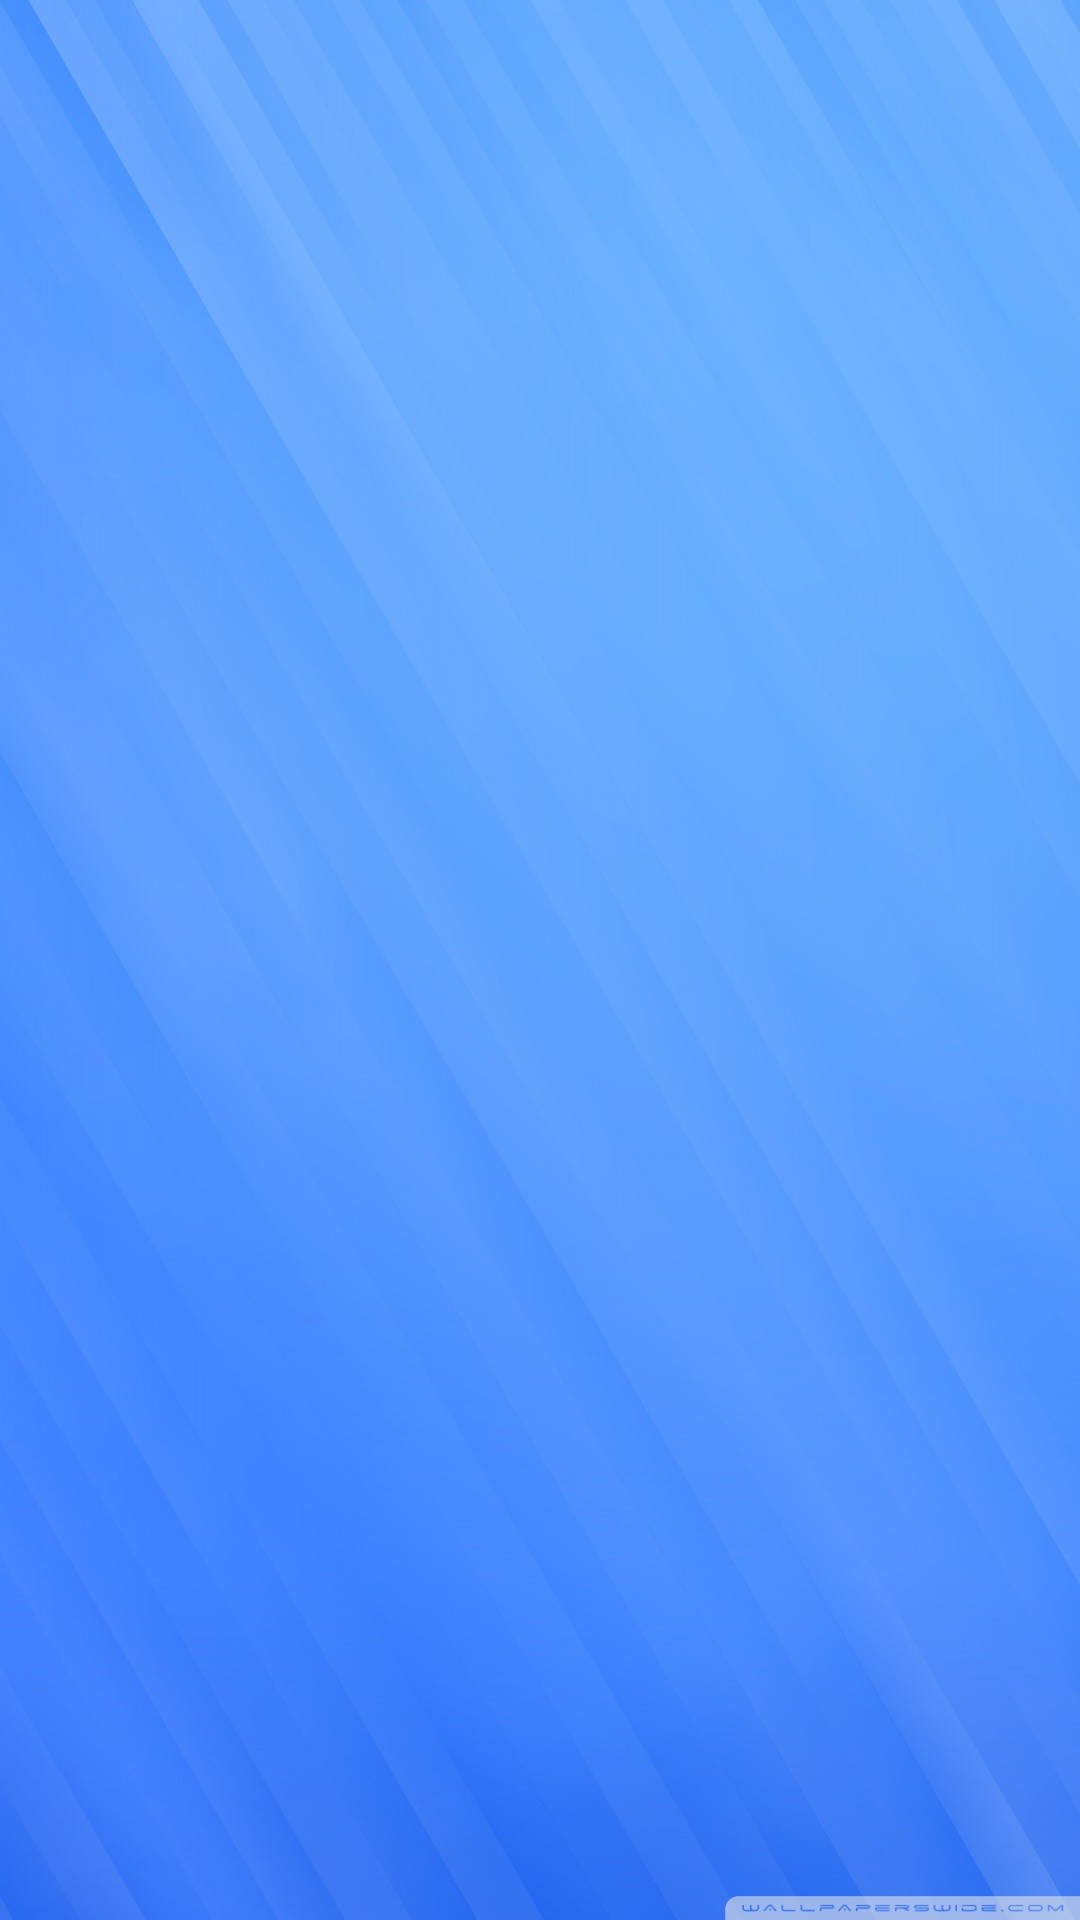 Free Abstract Background Blue phone wallpaper by mikaila2